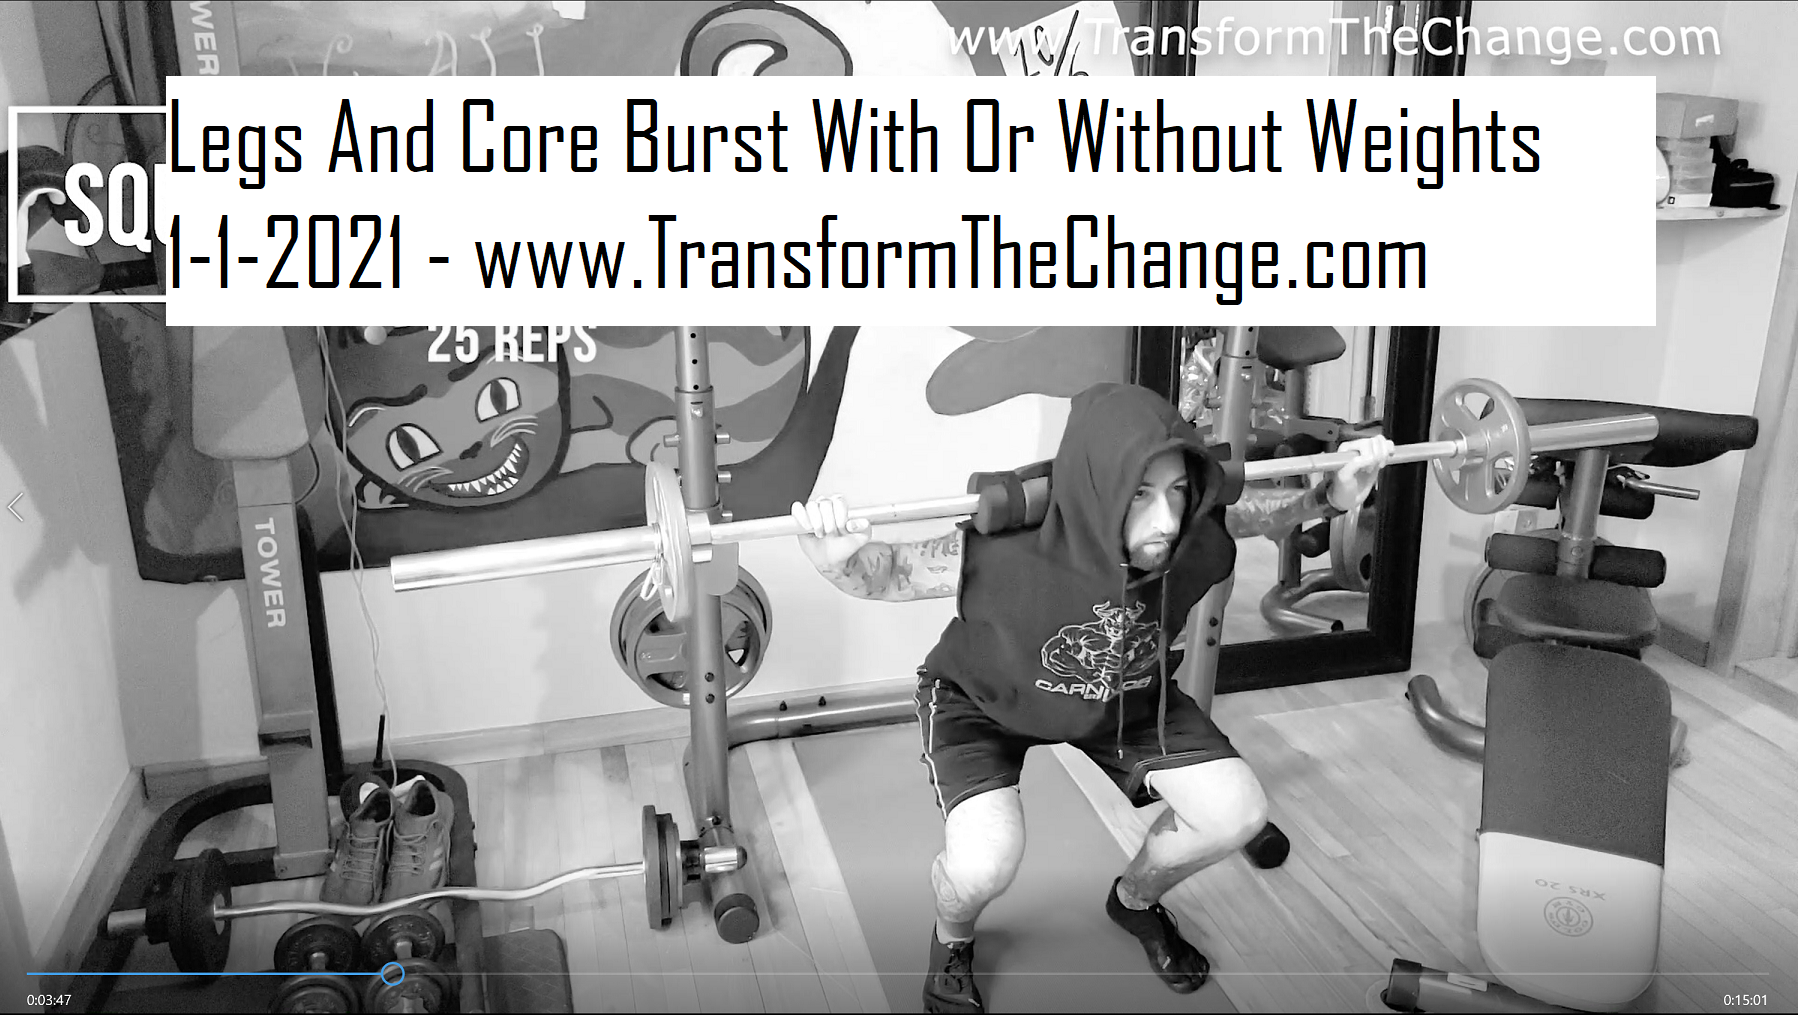 Legs And Core Burst With Or Without Weights 1-1-2021